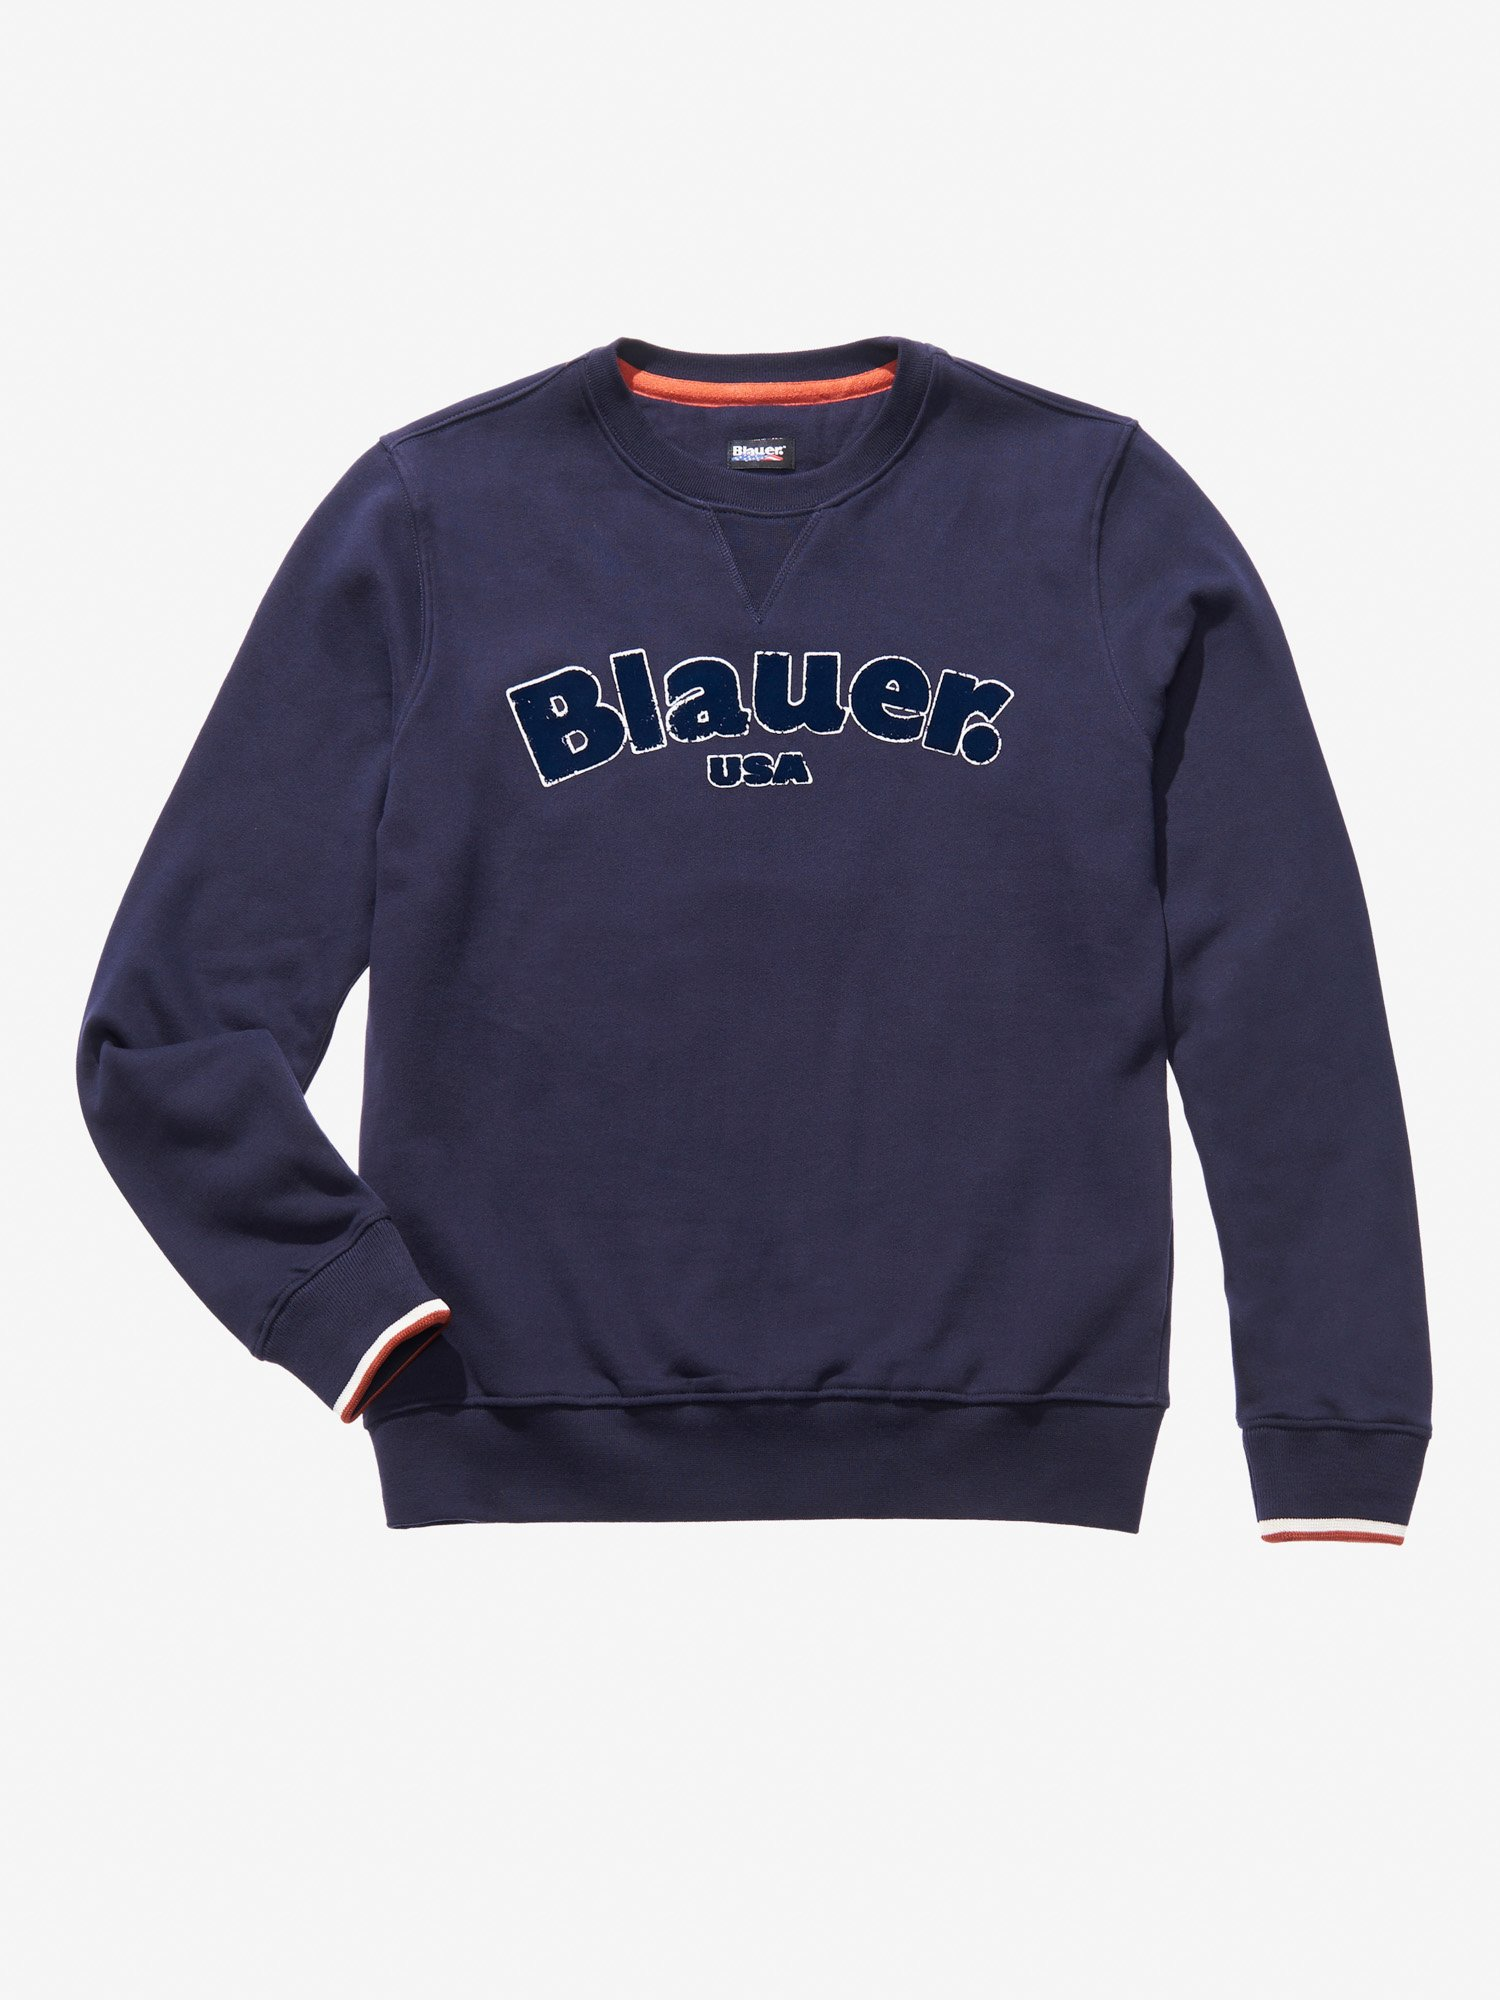 Blauer - CREW NECK HEAVY SWEATSHIRT - Dark Night Blue - Blauer